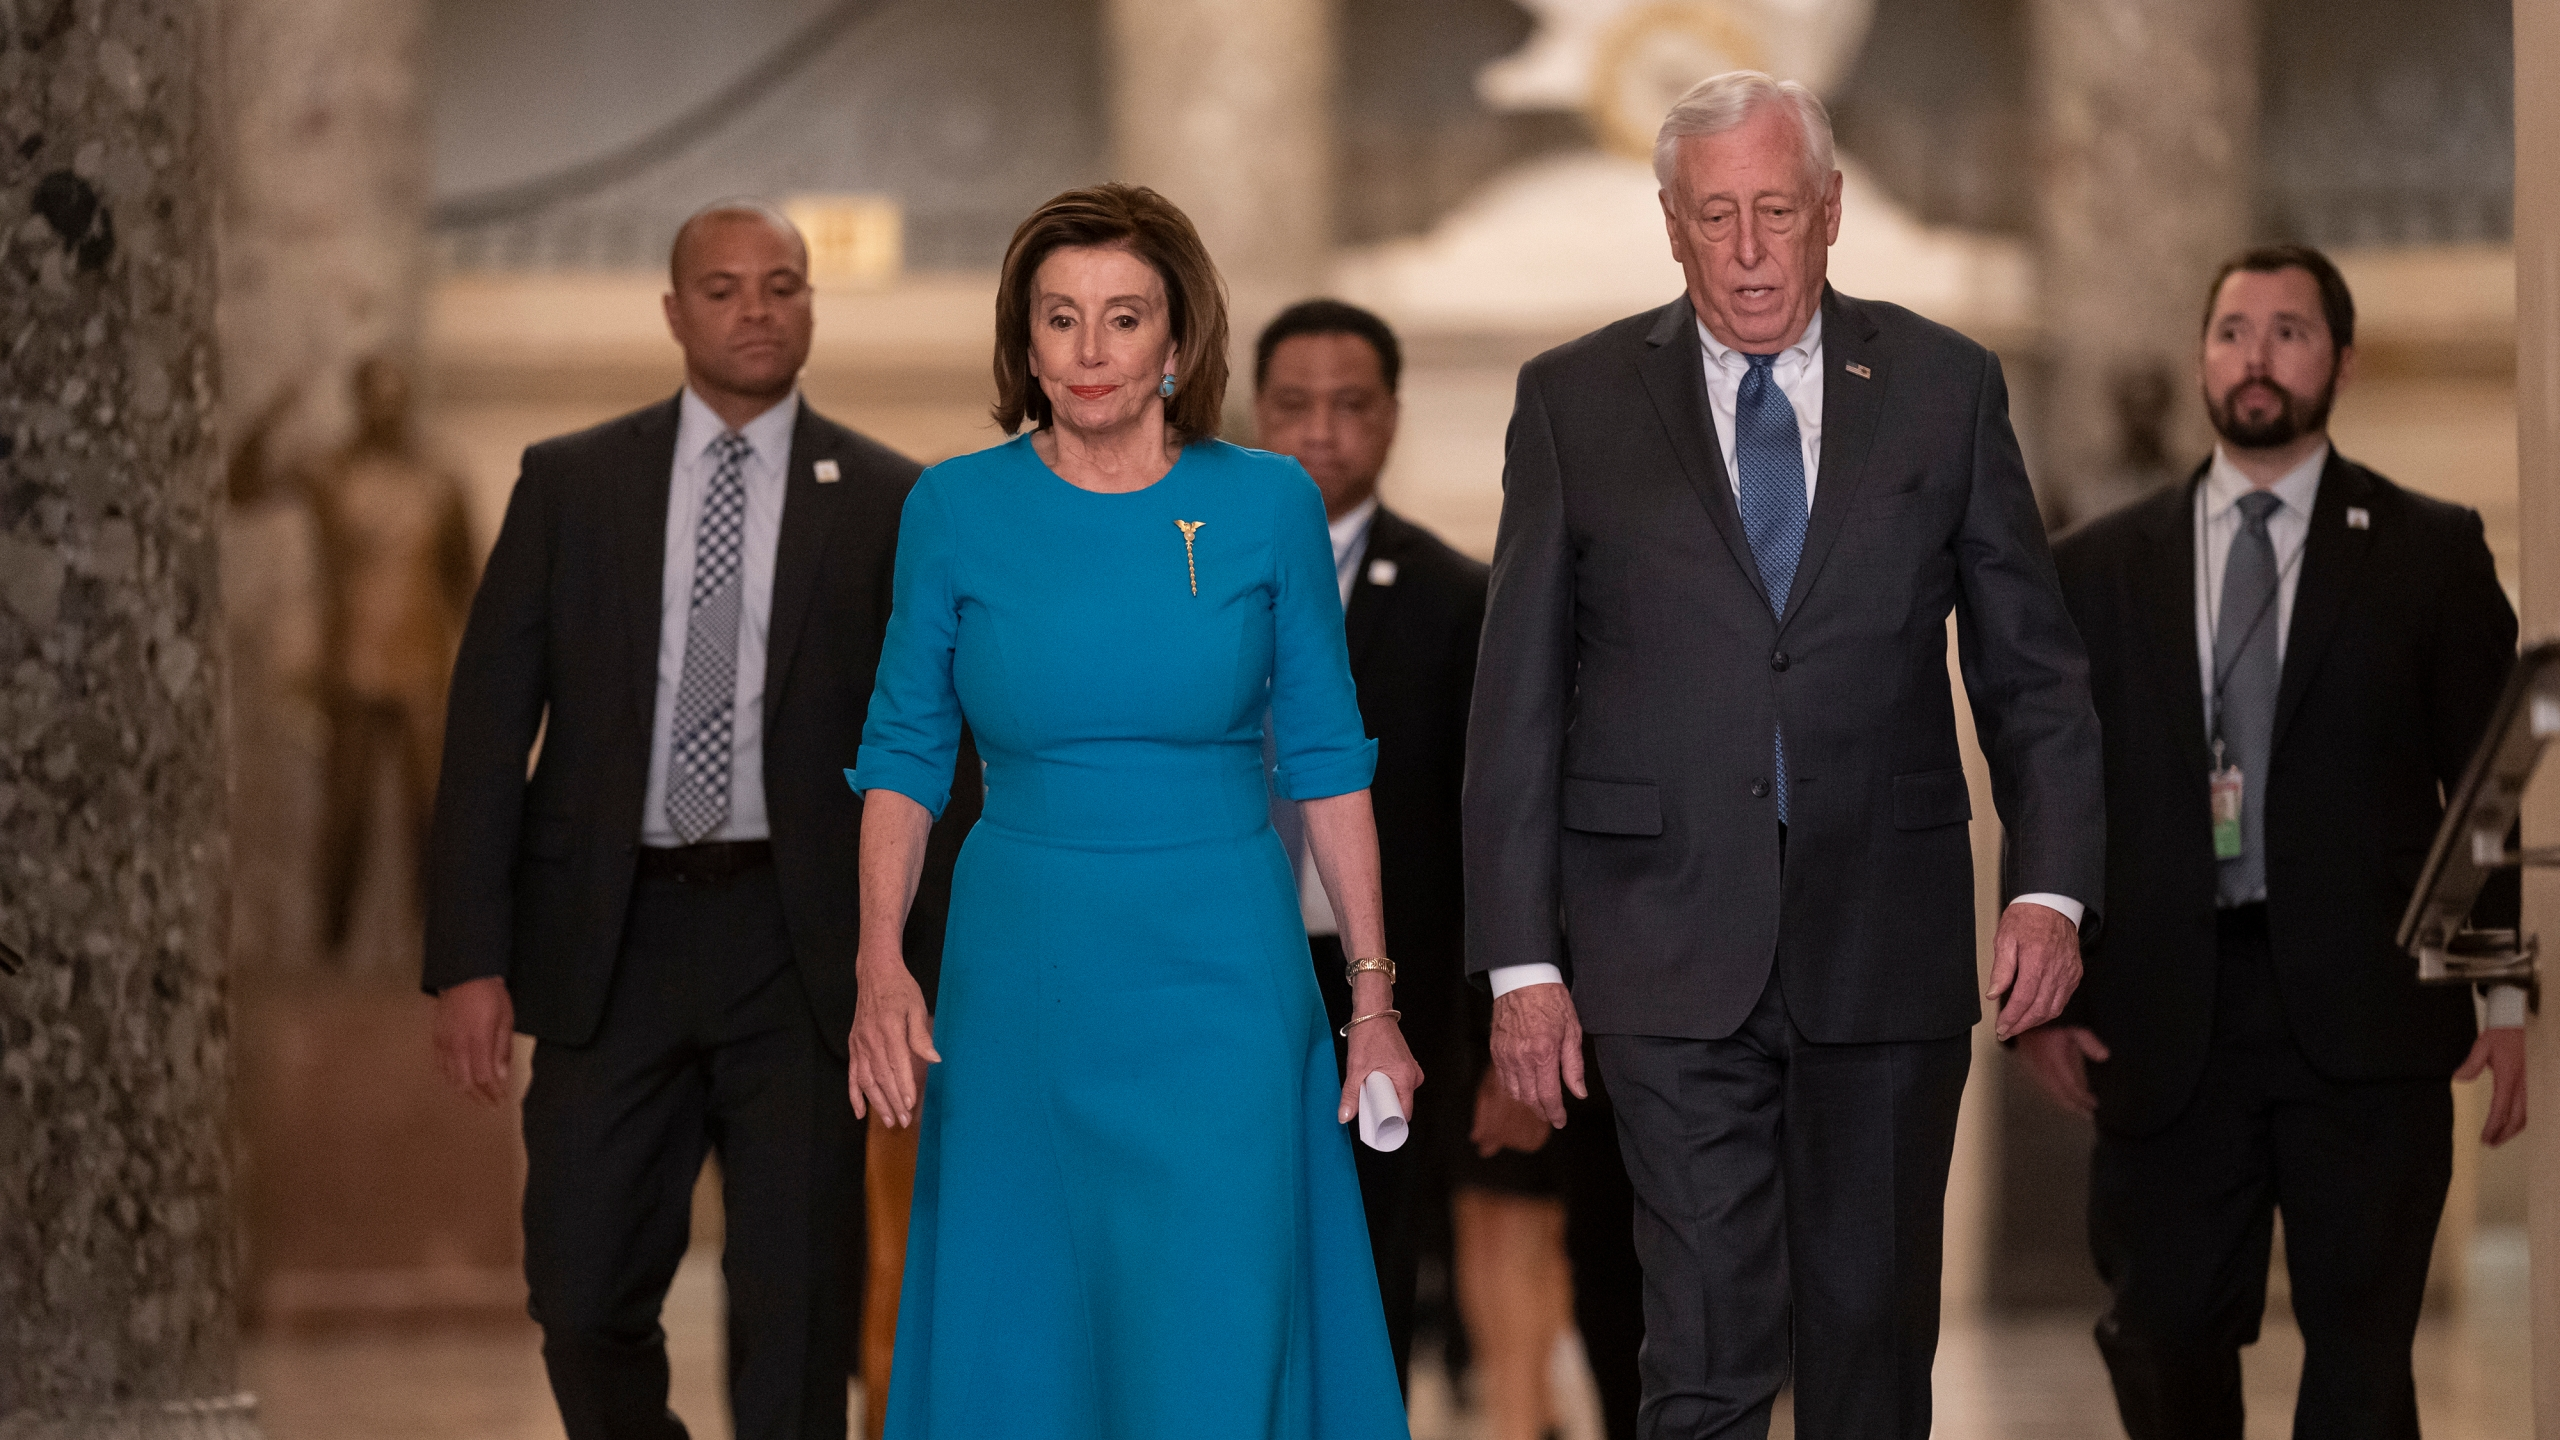 Nancy Pelosi, Steny Hoyer